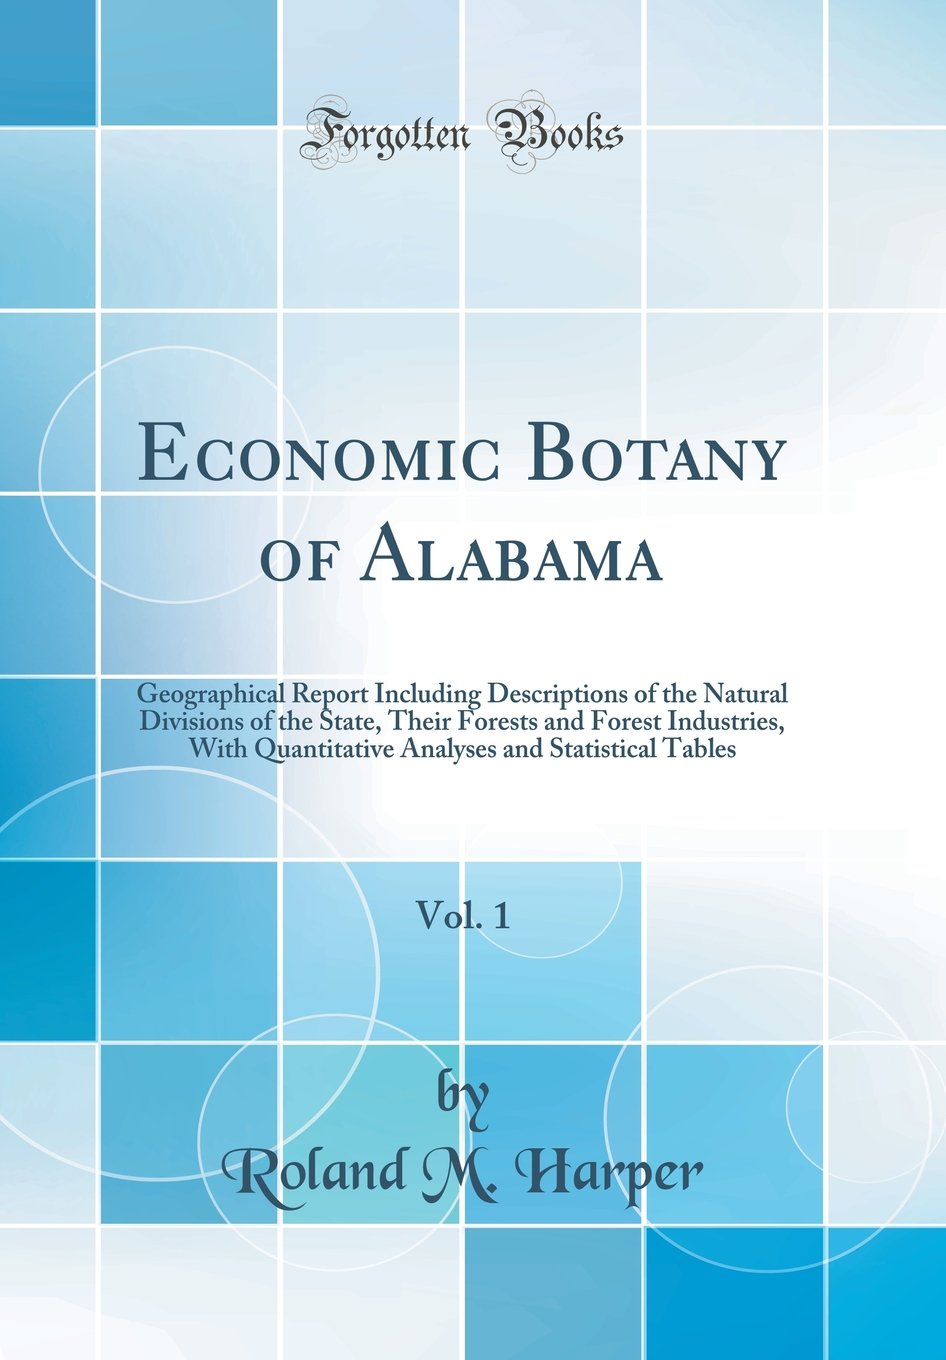 Economic Botany of Alabama, Vol. 1: Geographical Report Including Descriptions of the Natural Divisions of the State, Their Forests and Forest ... and Statistical Tables (Classic Reprint) PDF